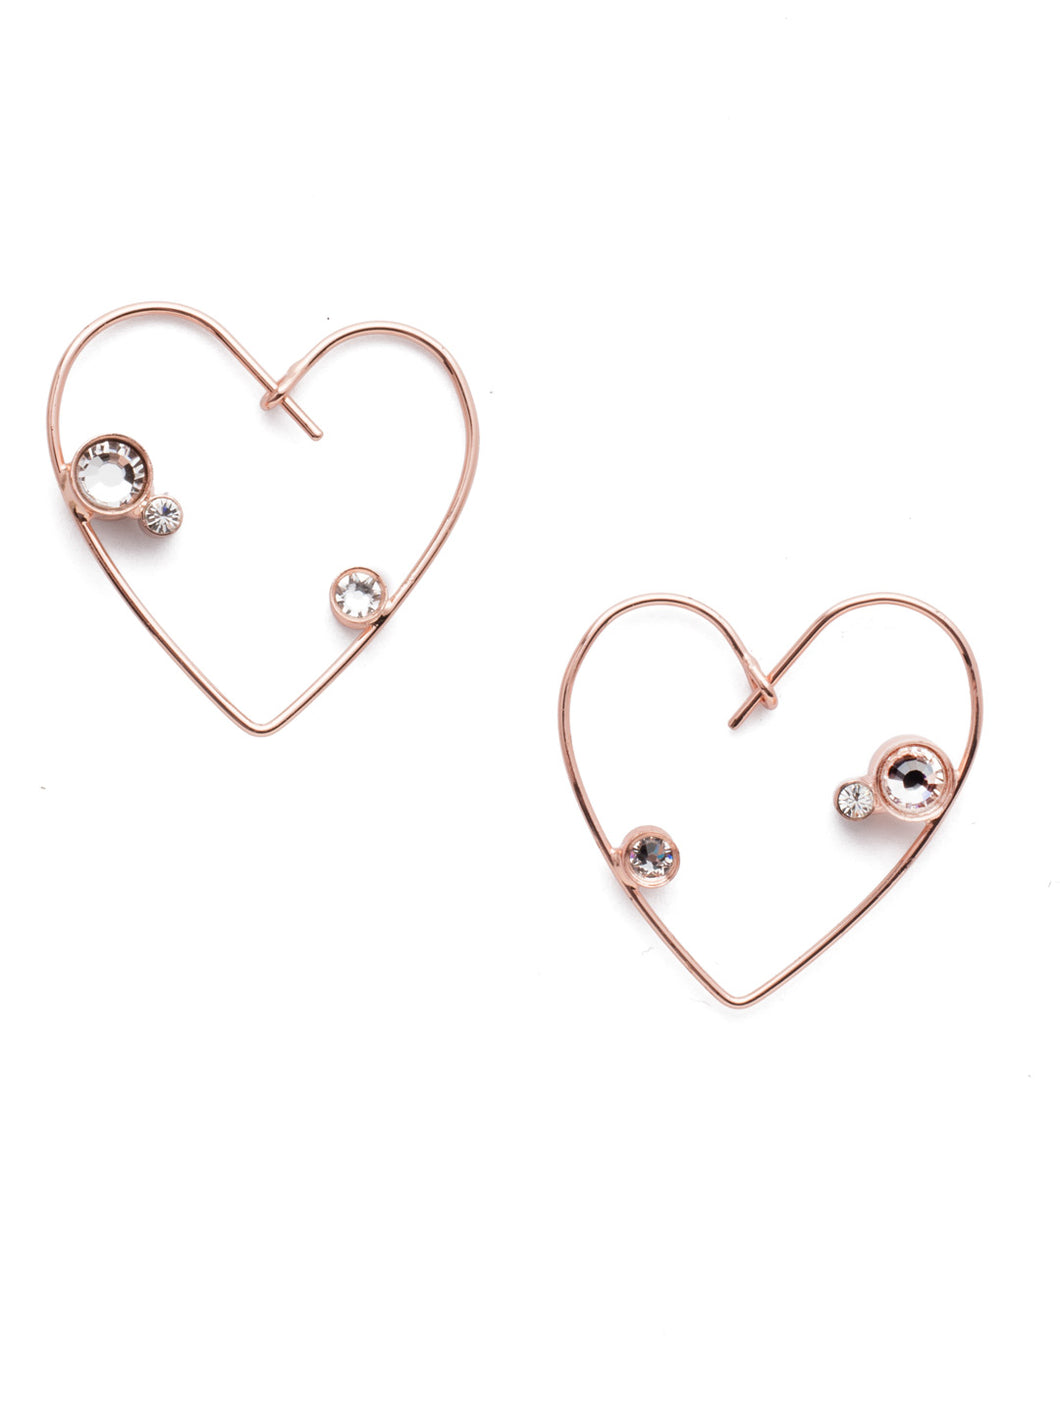 Wire Heart Earrings w/Crystal Accents